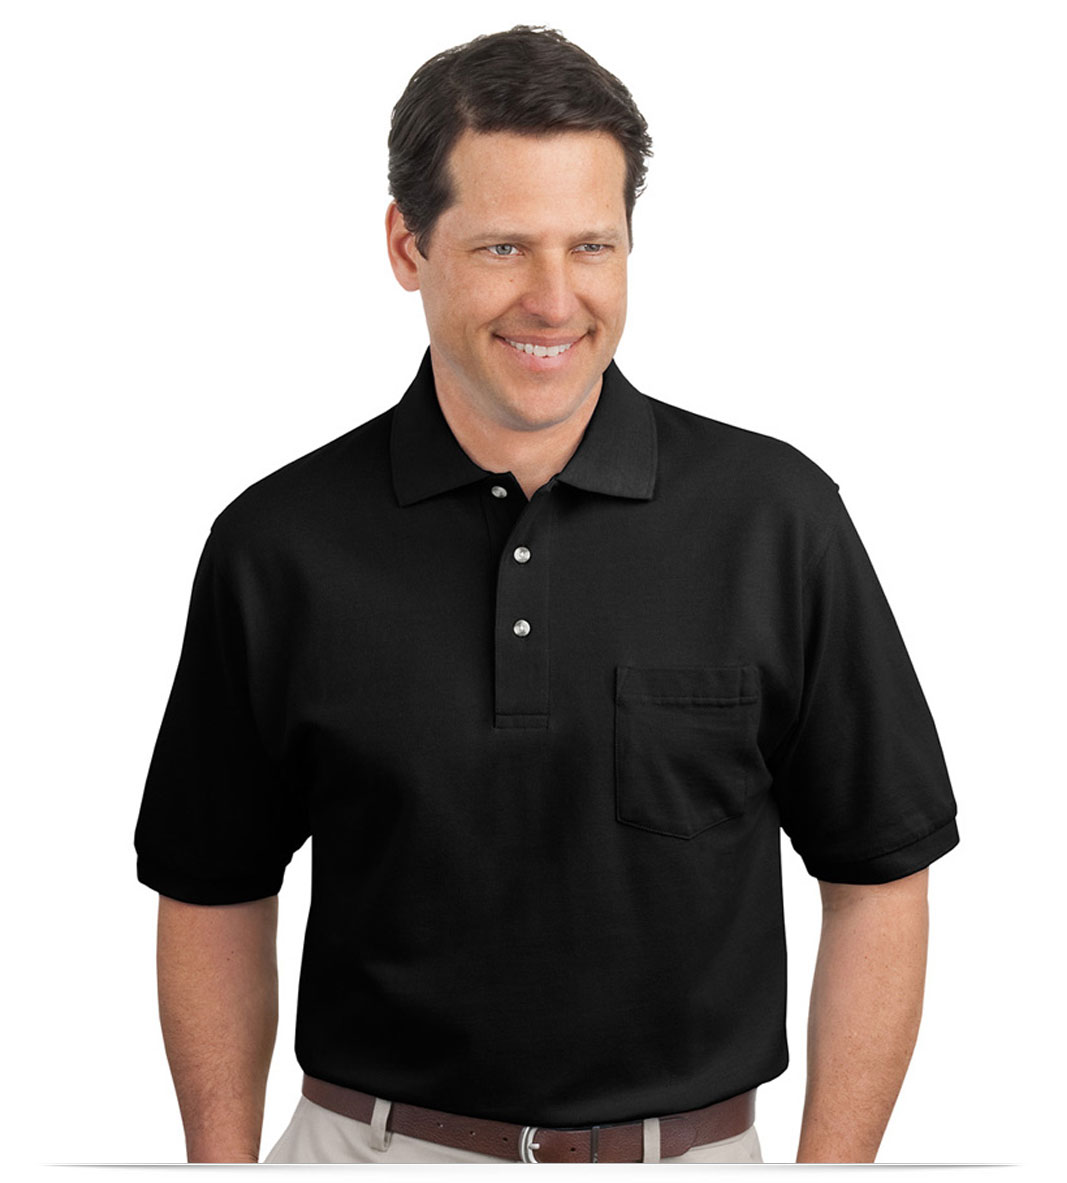 Design embroidered pique knit pocket polo shirt online at for Embroidered work shirts no minimum order